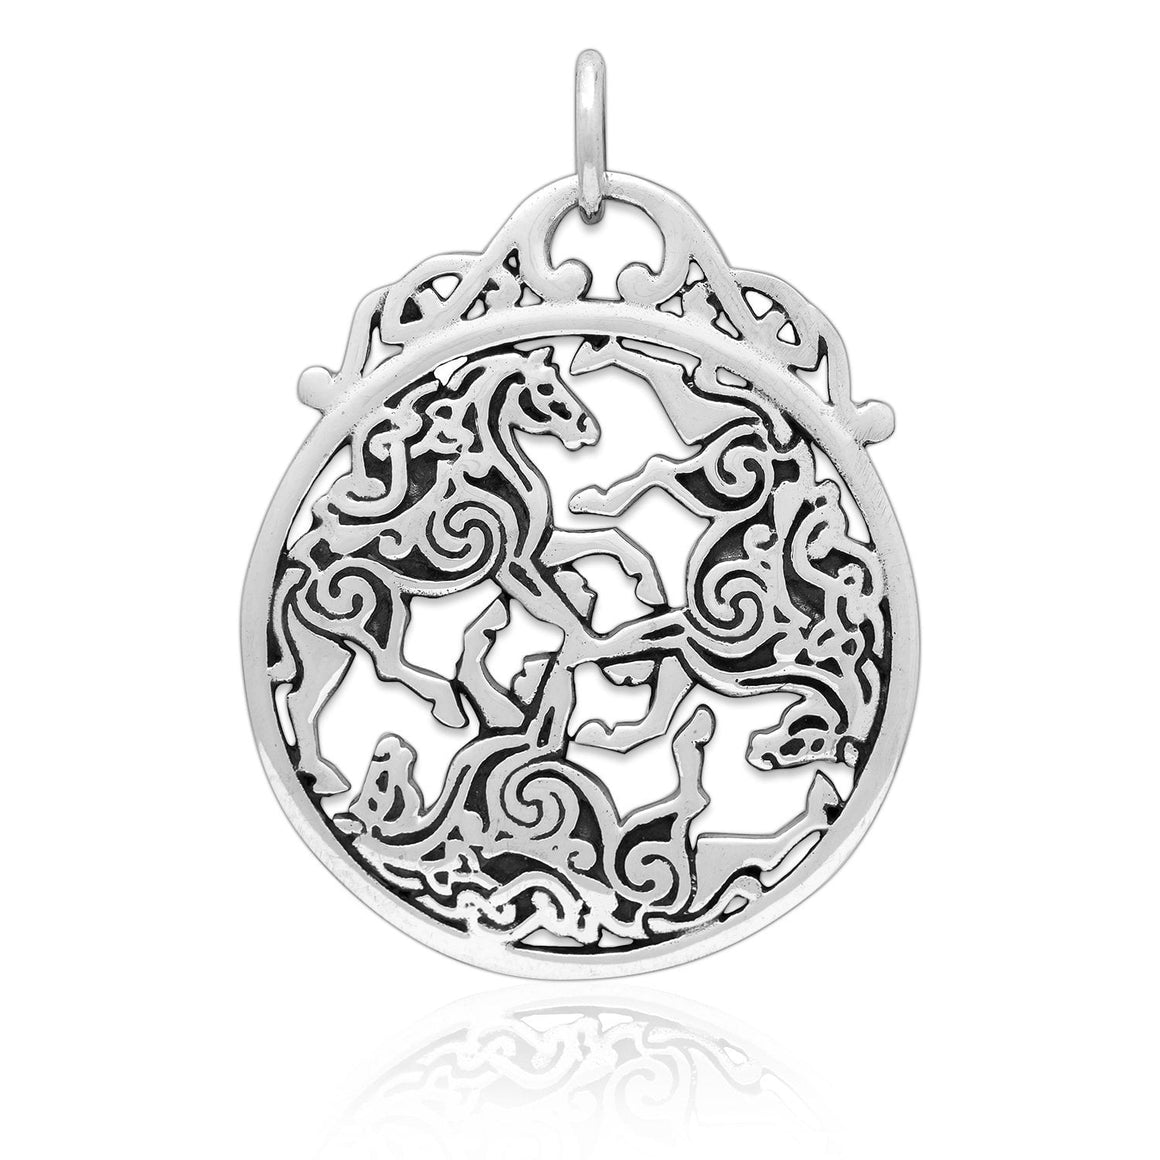 925 Sterling Silver Three Horse Celtic Irish Knot Knotwork Epona Pendant - SilverMania925